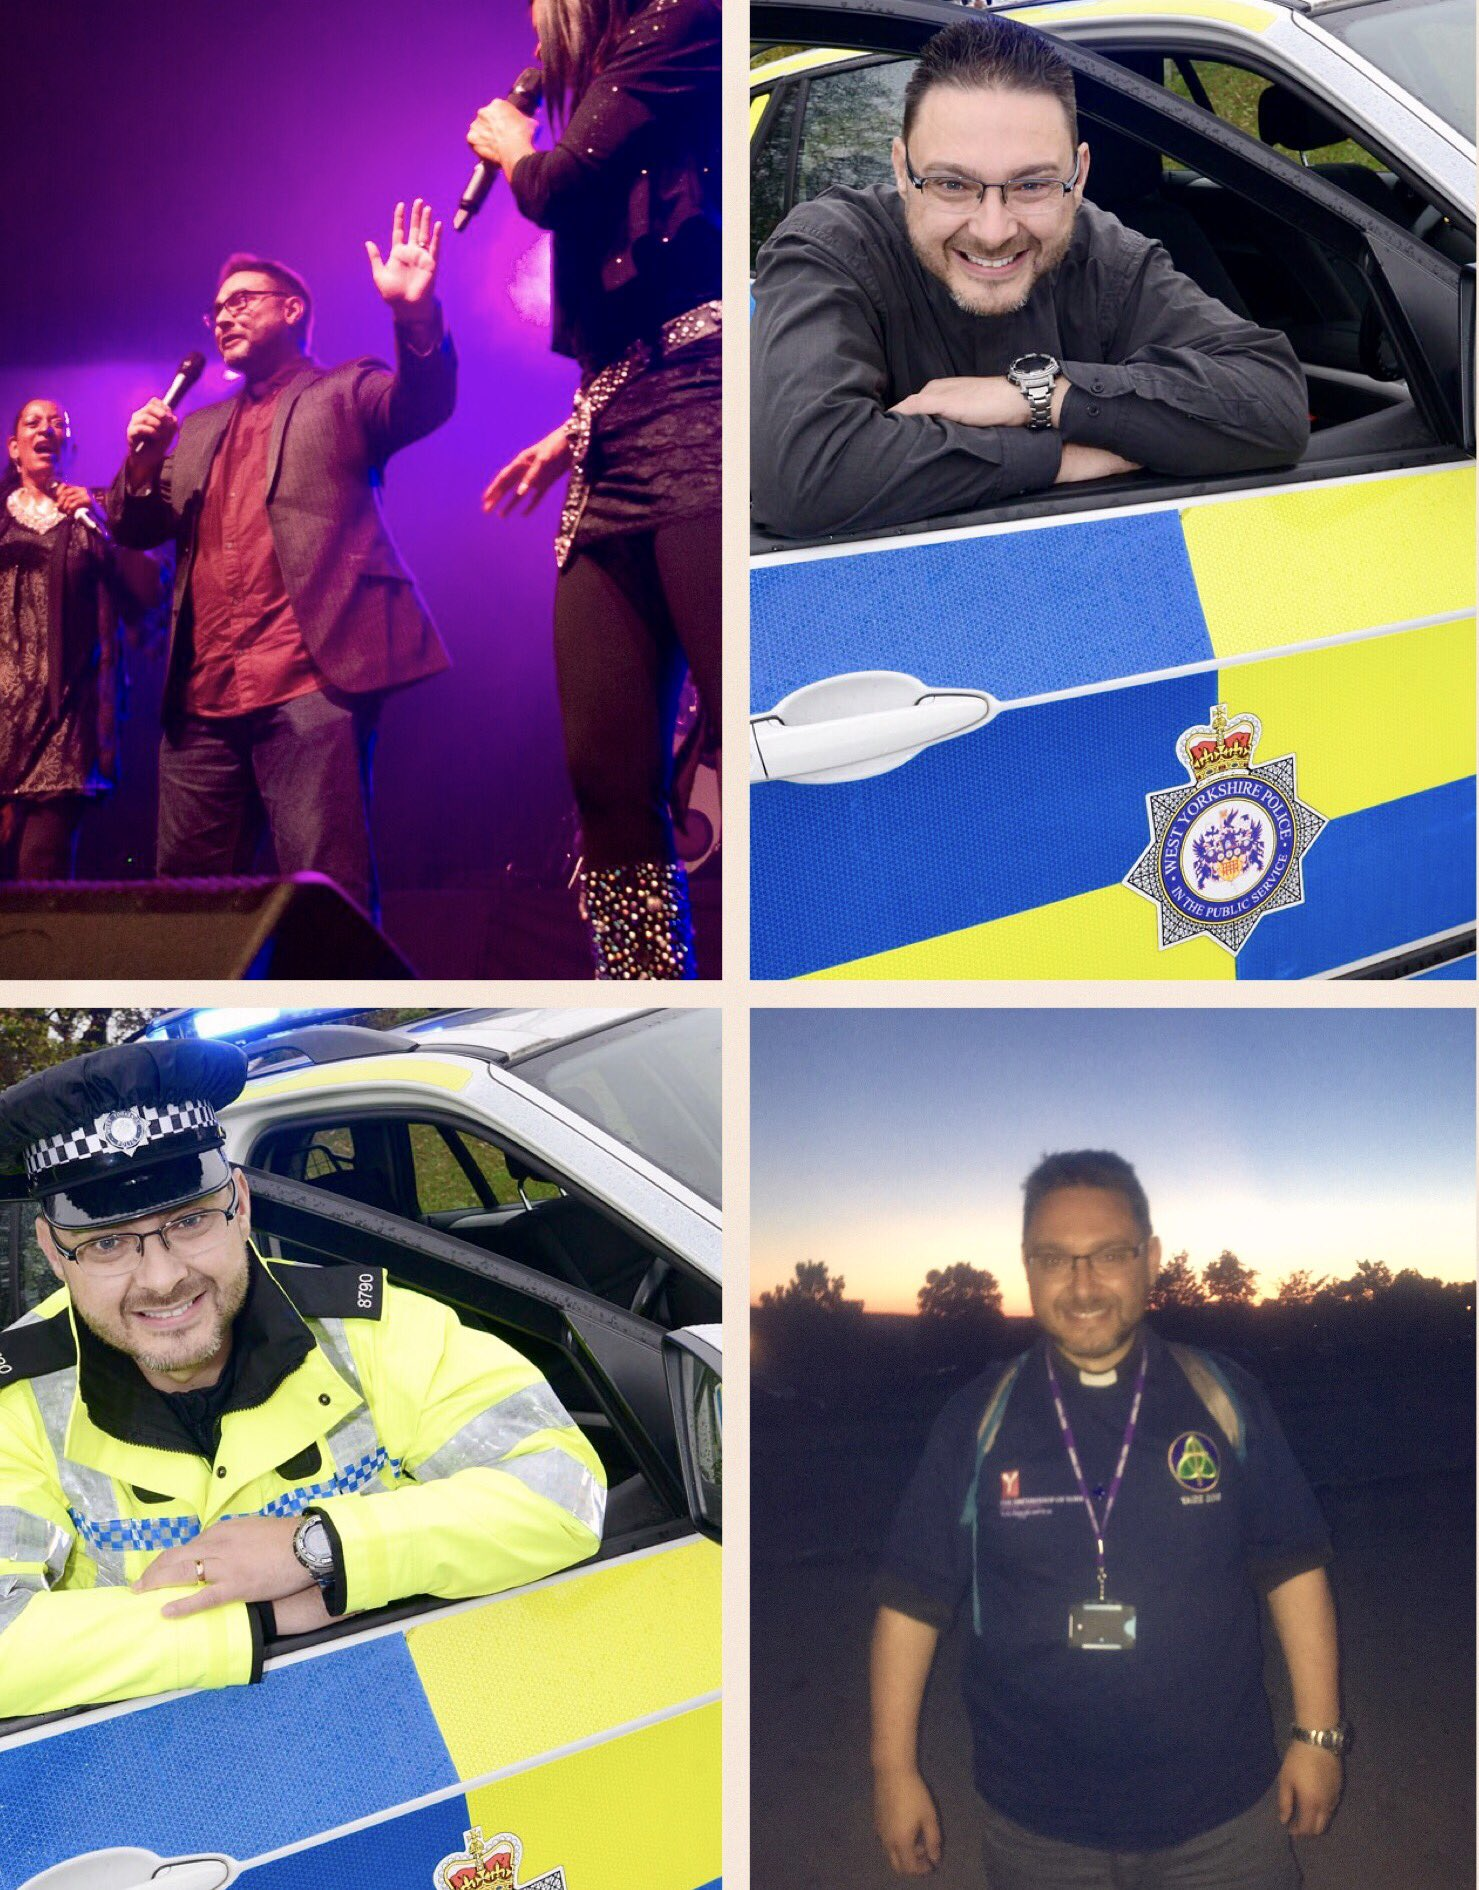 Four images showing Senior Section Officer Paul Cartwright on duty